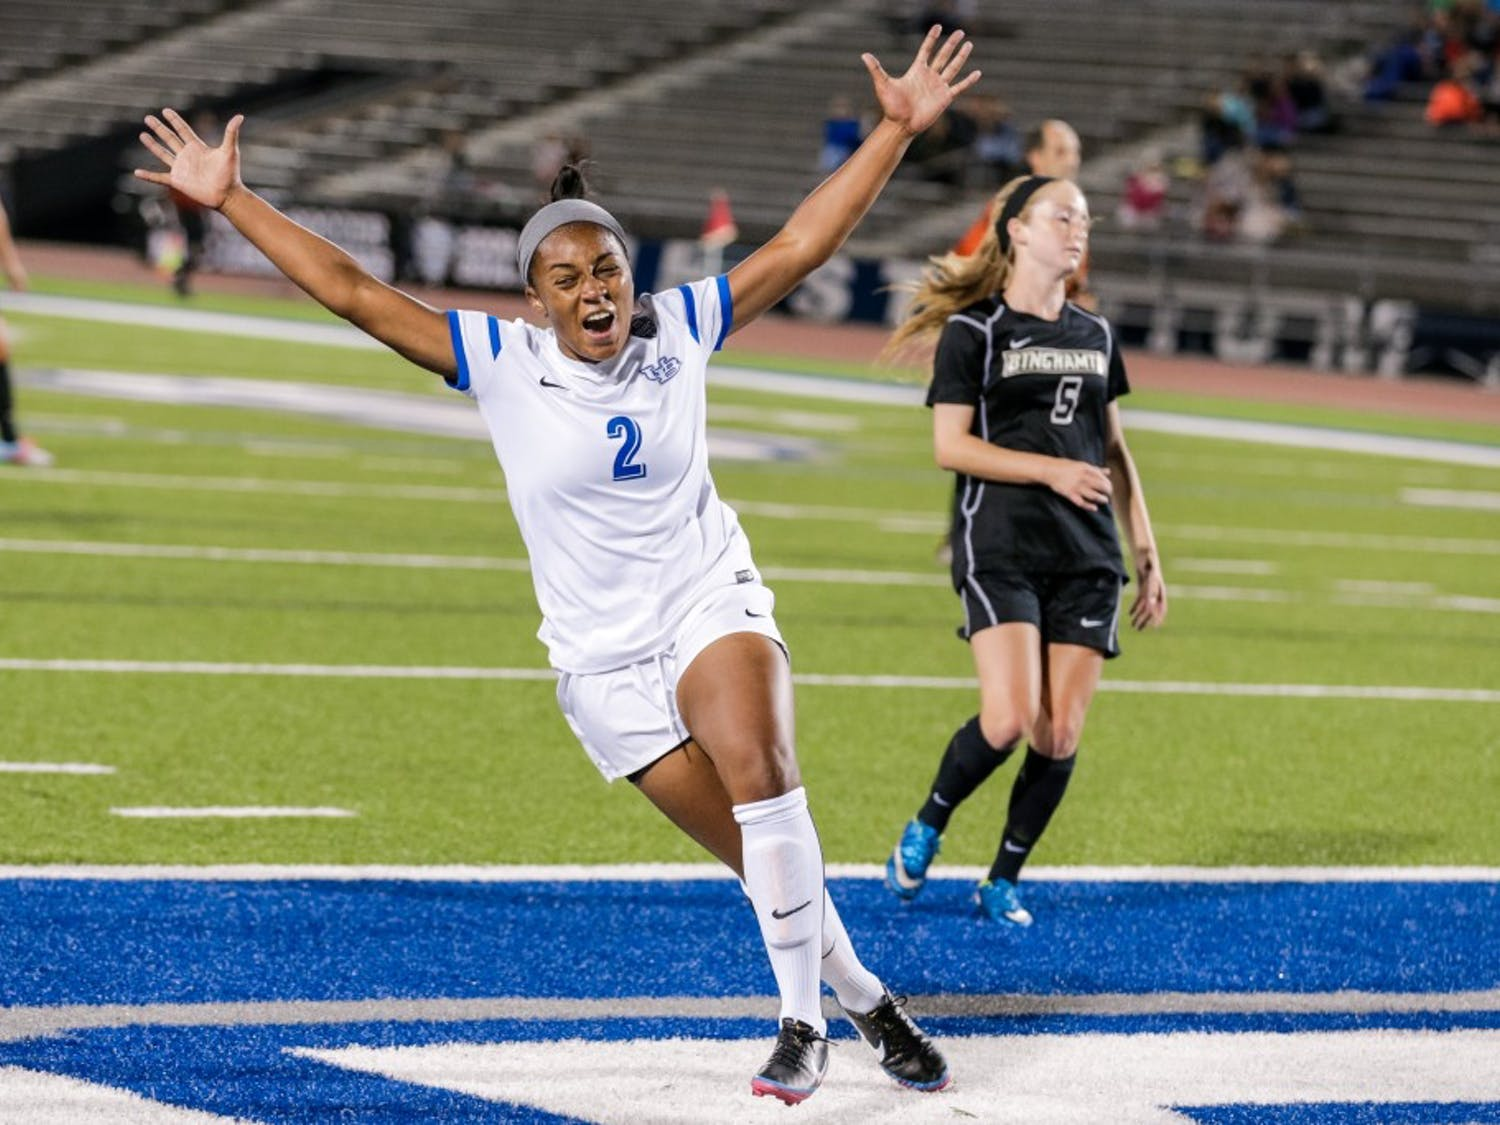 N'DeaJohnson celebrates after scoring a goal against Binghamton. It was the first goal Johnson scored in her UB career, after missing the last two seasons with various injuries.